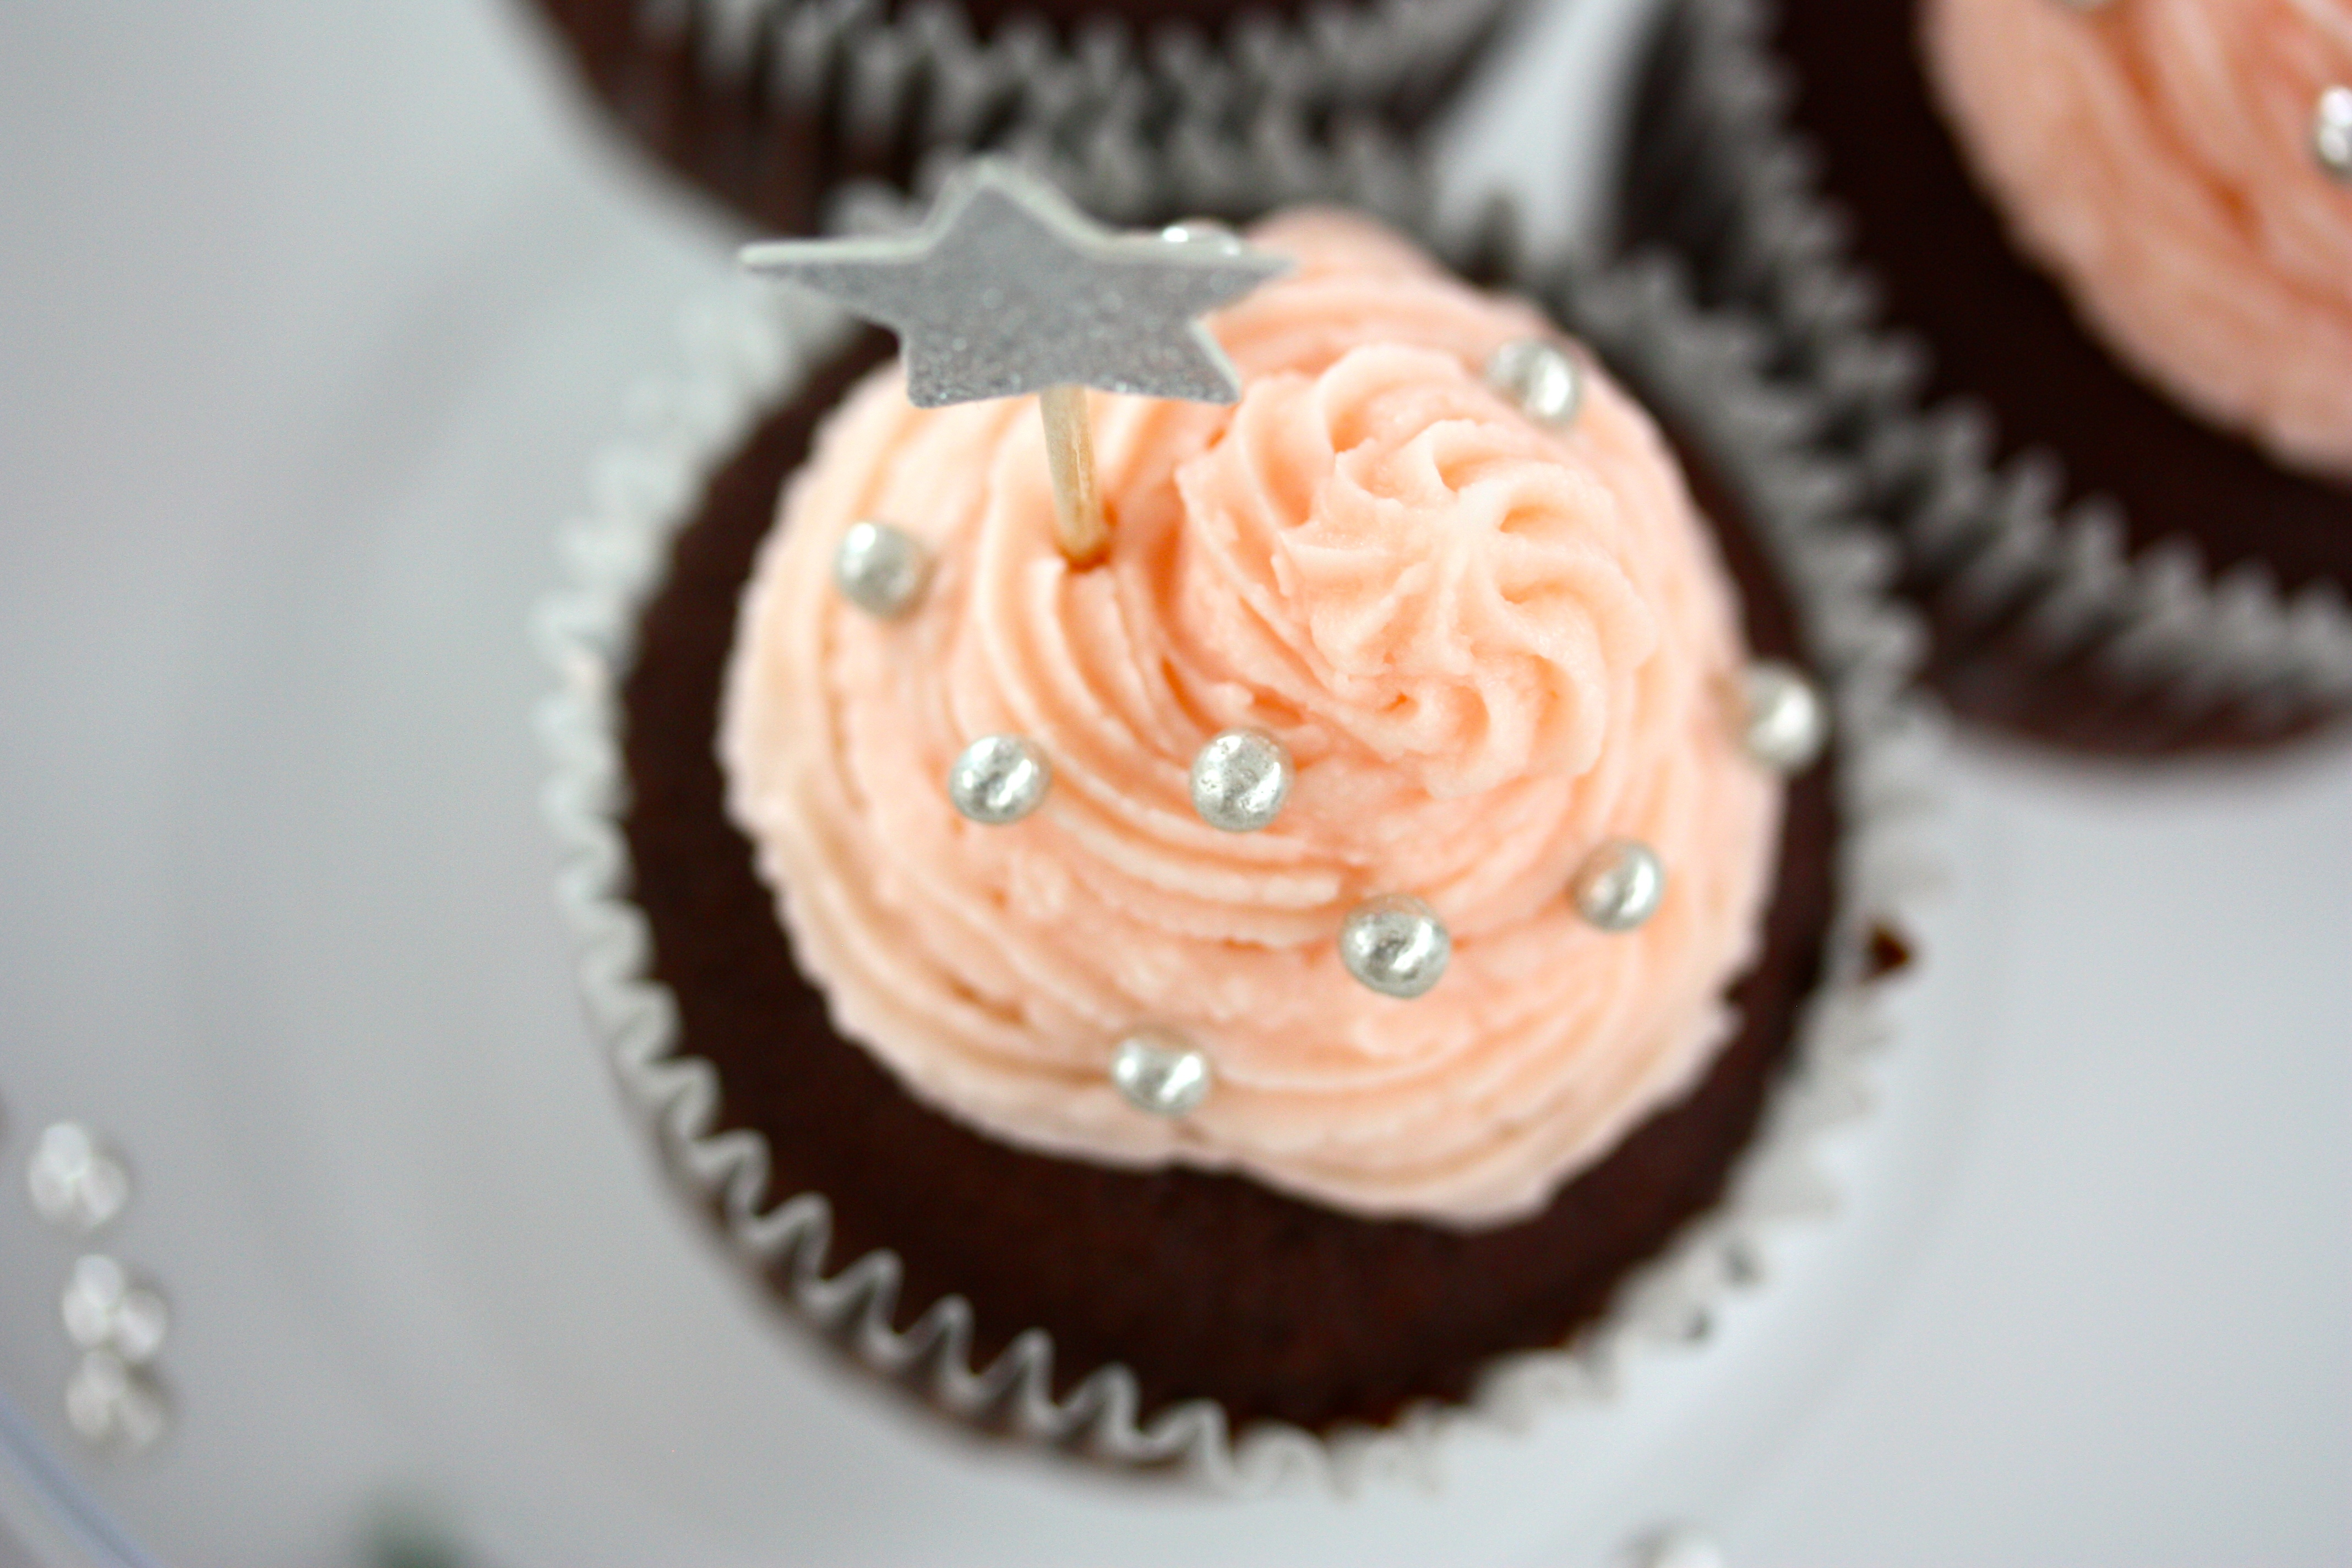 Chocolate Cupcakes with Rose Water Frosting – Chokladcupcakes med Rosenvatten Frosting